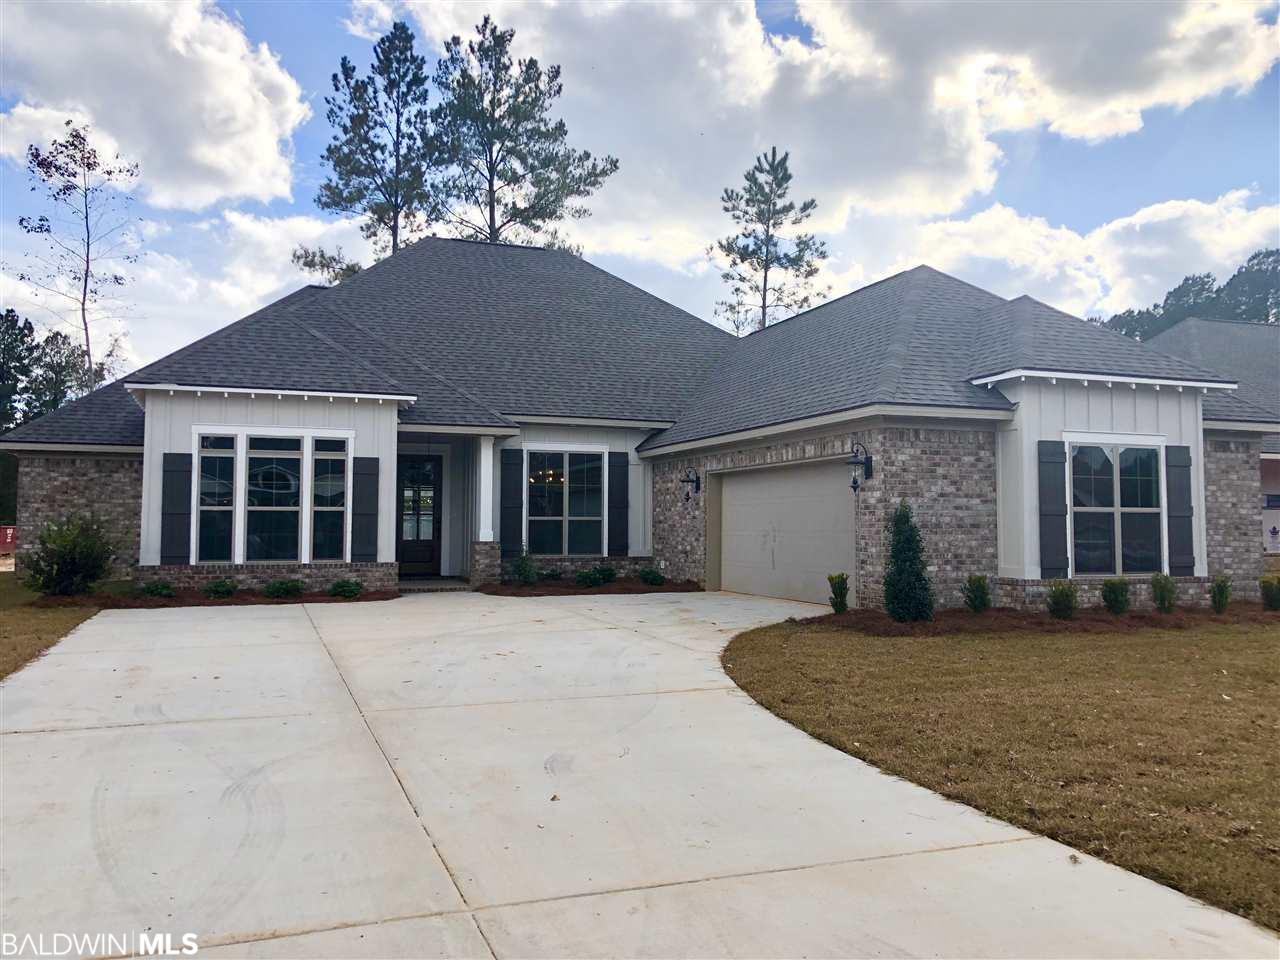 The Florence with Keeping Room is a spacious 4 bedroom 3 bath home and has a 13' x 15' keeping room to significantly expands the options for entertaining guests, family and friends. Fox Hollow features wooded lots conveniently located near shopping, schools, restaurants and medical facilities. This split floor plan offers a large open kitchen with Stainless Steel appliances, 5 burner gas cook top, granite counter-tops and custom built cabinetry opens into the living room with gas fireplace and windows galore; allowing plenty of natural light. 6 zone irrigation included. Fox Hollow has a 2 ac lake stocked with fish for residence only. Built to Gold Fortified Standards to help reduce insurance cost. It is protected by a 2-10 Home Buyers Warranty. It comes with a 11 item CONNECTED HOME package. Fox Hollow is a Fairhope Single Tax Property. Estimated completion date is Jan-Feb 2020.